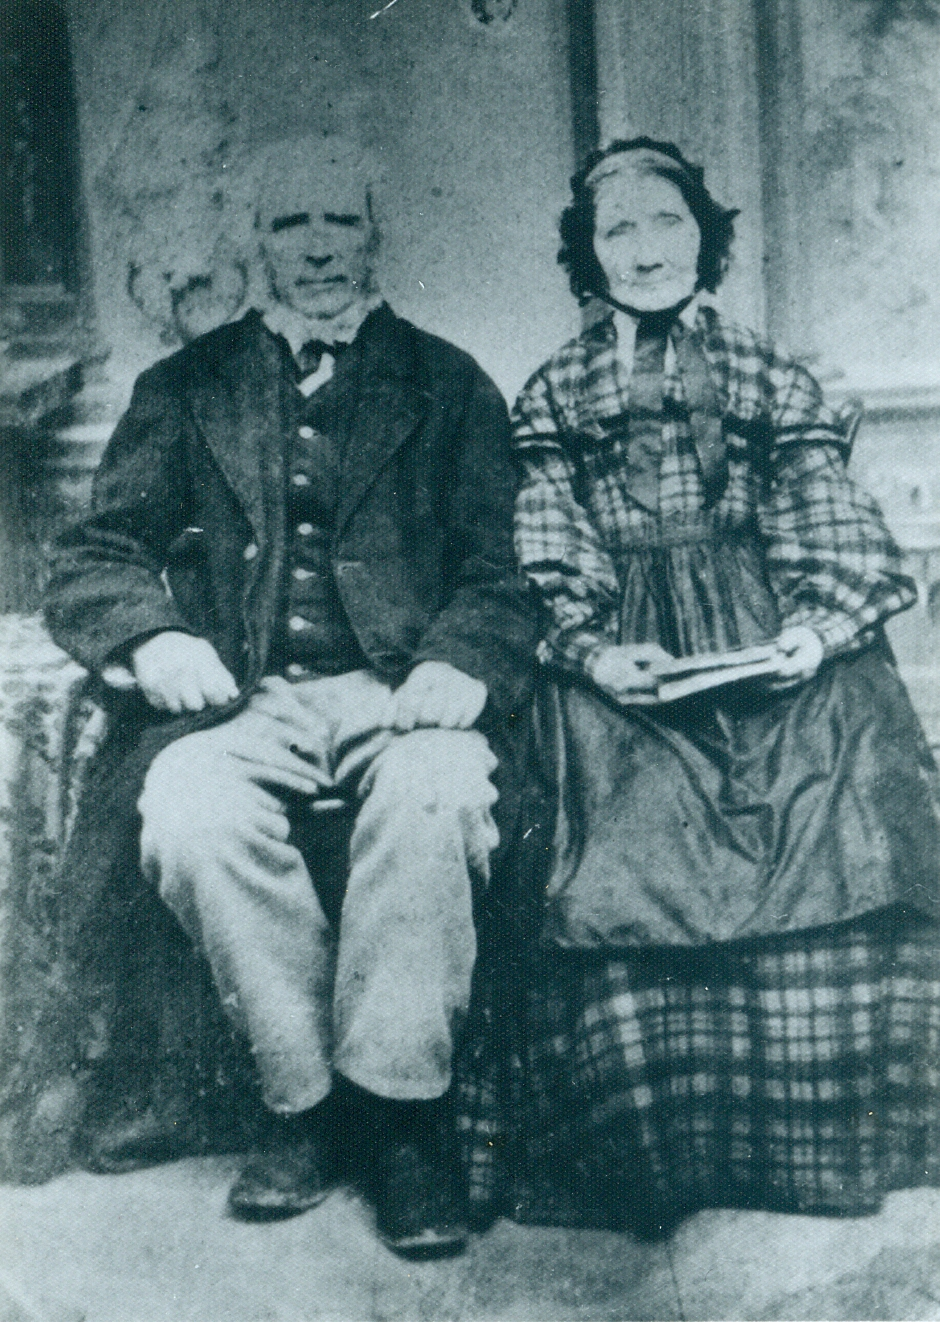 Edward Stanbury and Mary Jane Aunger Stanbury n 1852, John emigrated to Canada and sought out his aunt and uncle,  Edward Stanbury and Mary Jane Aunger,   living in Seymour Township,  whose  daughter,  Catherine,  he later married